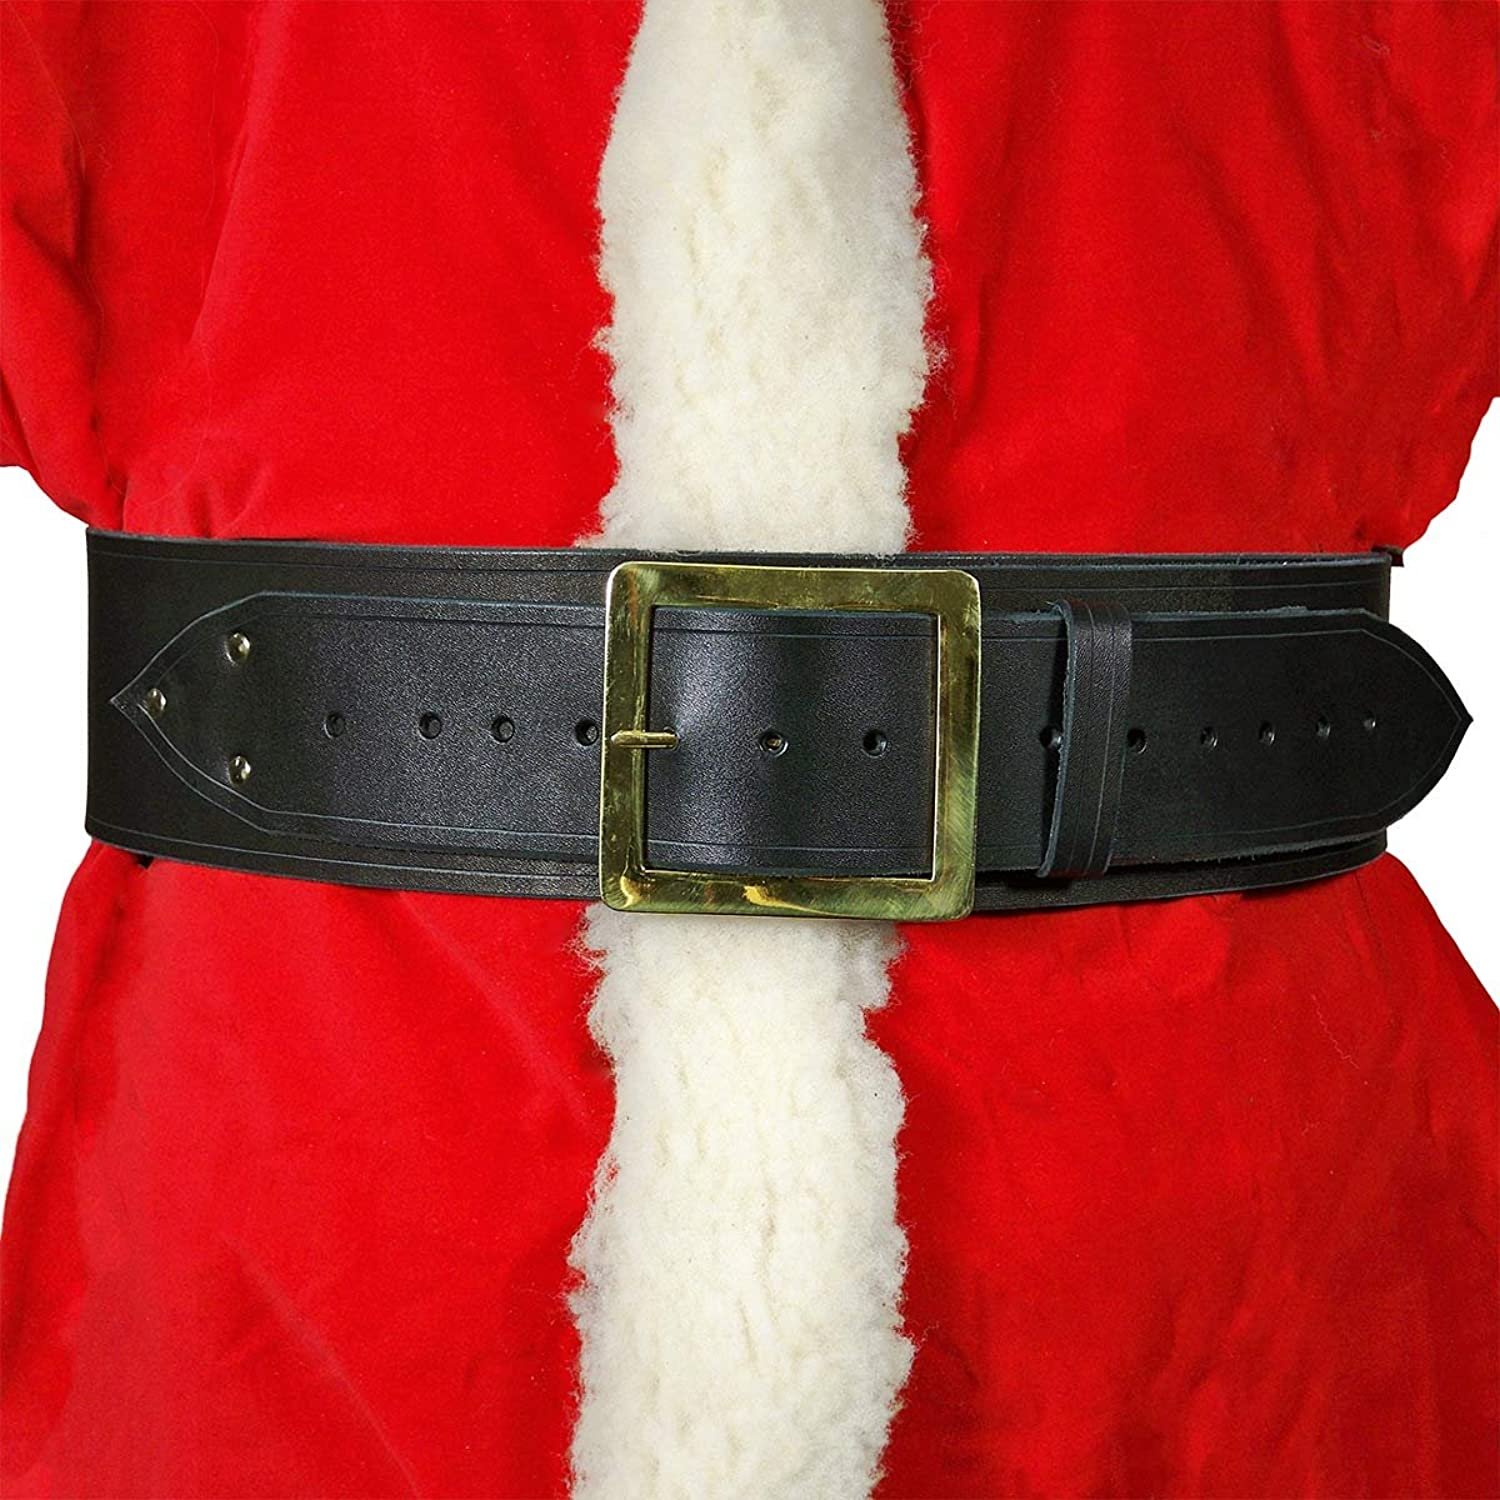 Santa Claus Wide Black Leather Belt - DeluxeAdultCostumes.com